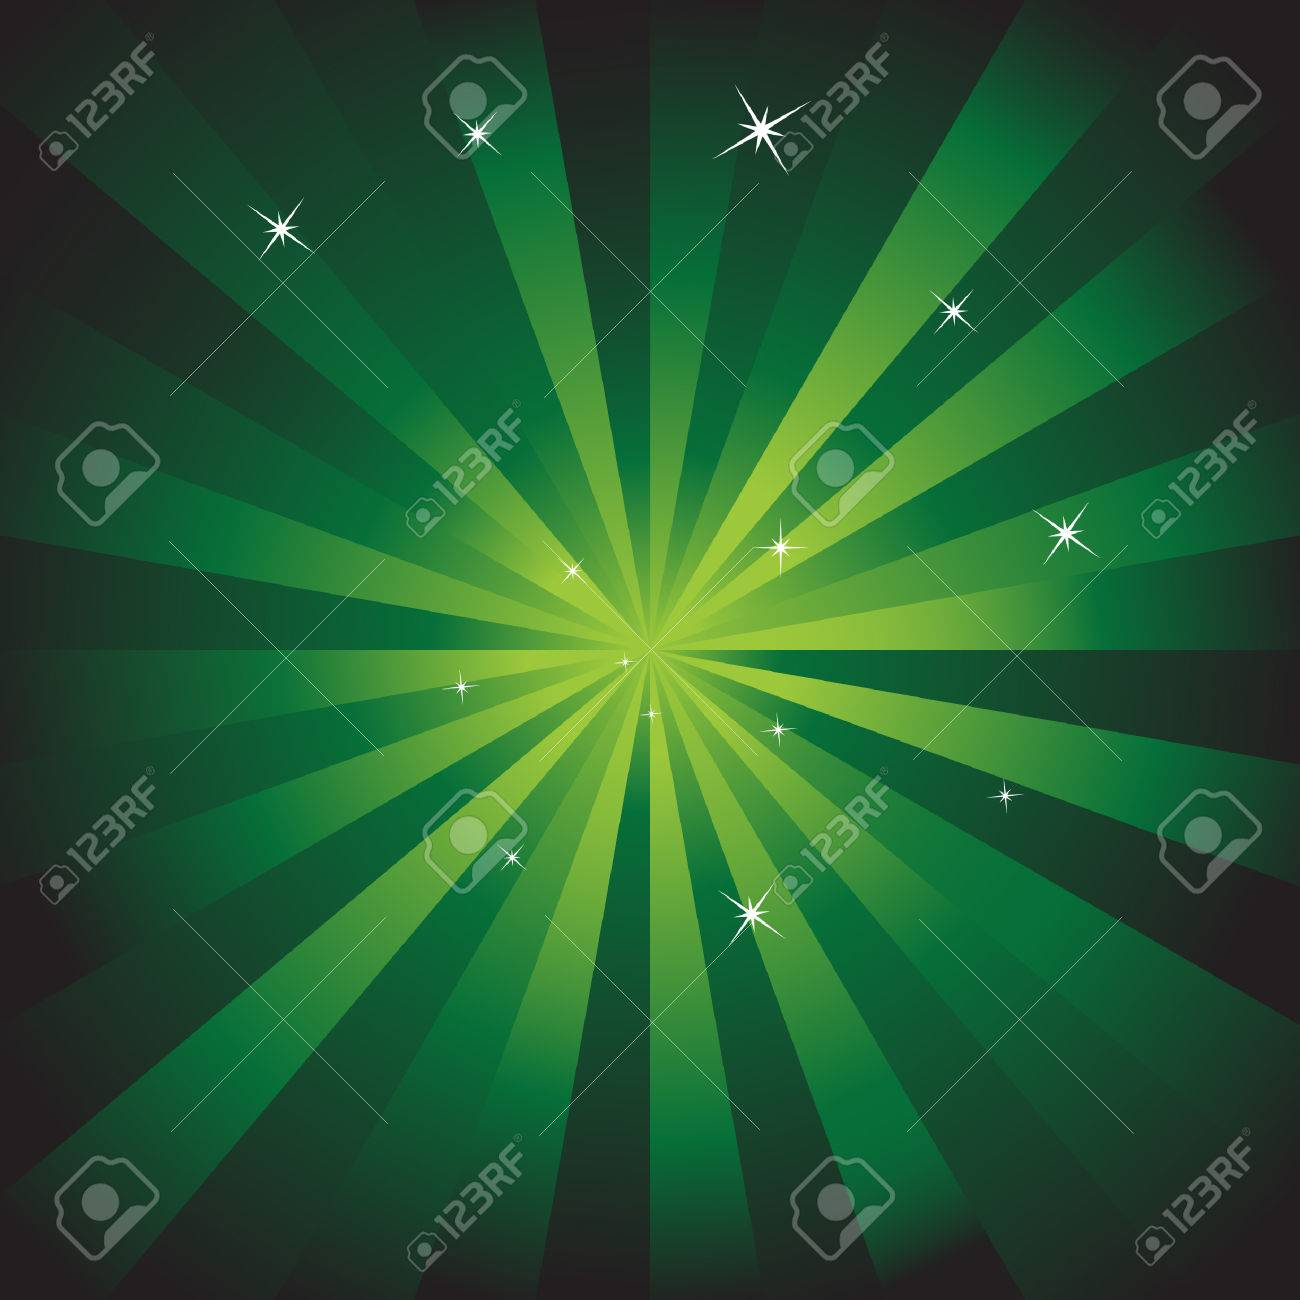 Green Energy Background Stock Vector - 5431944